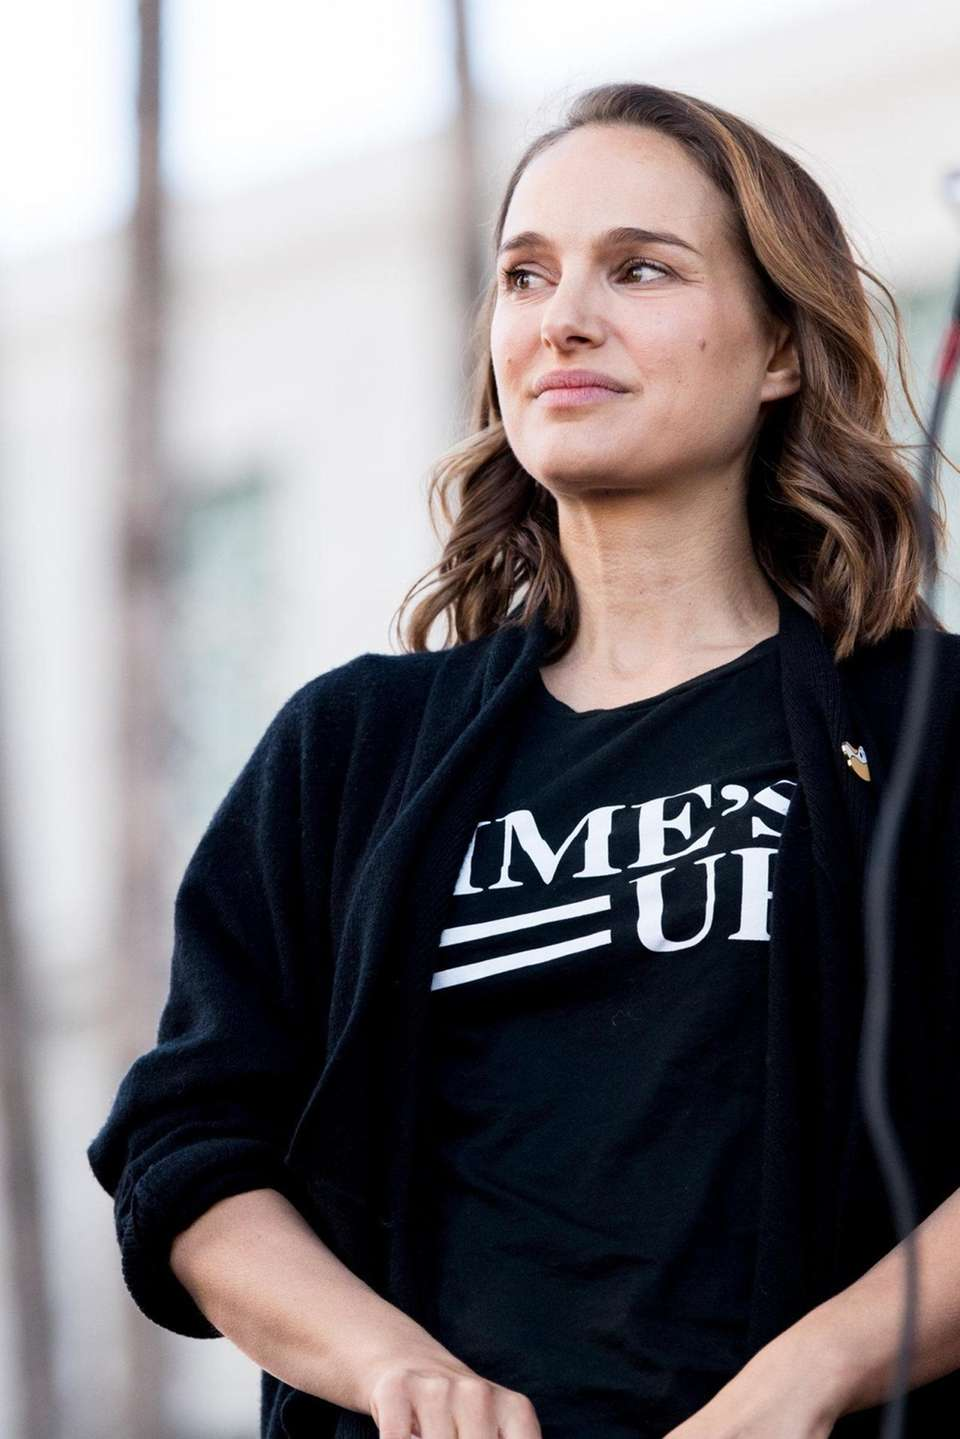 Actress Natalie Portman attends the women's march Los